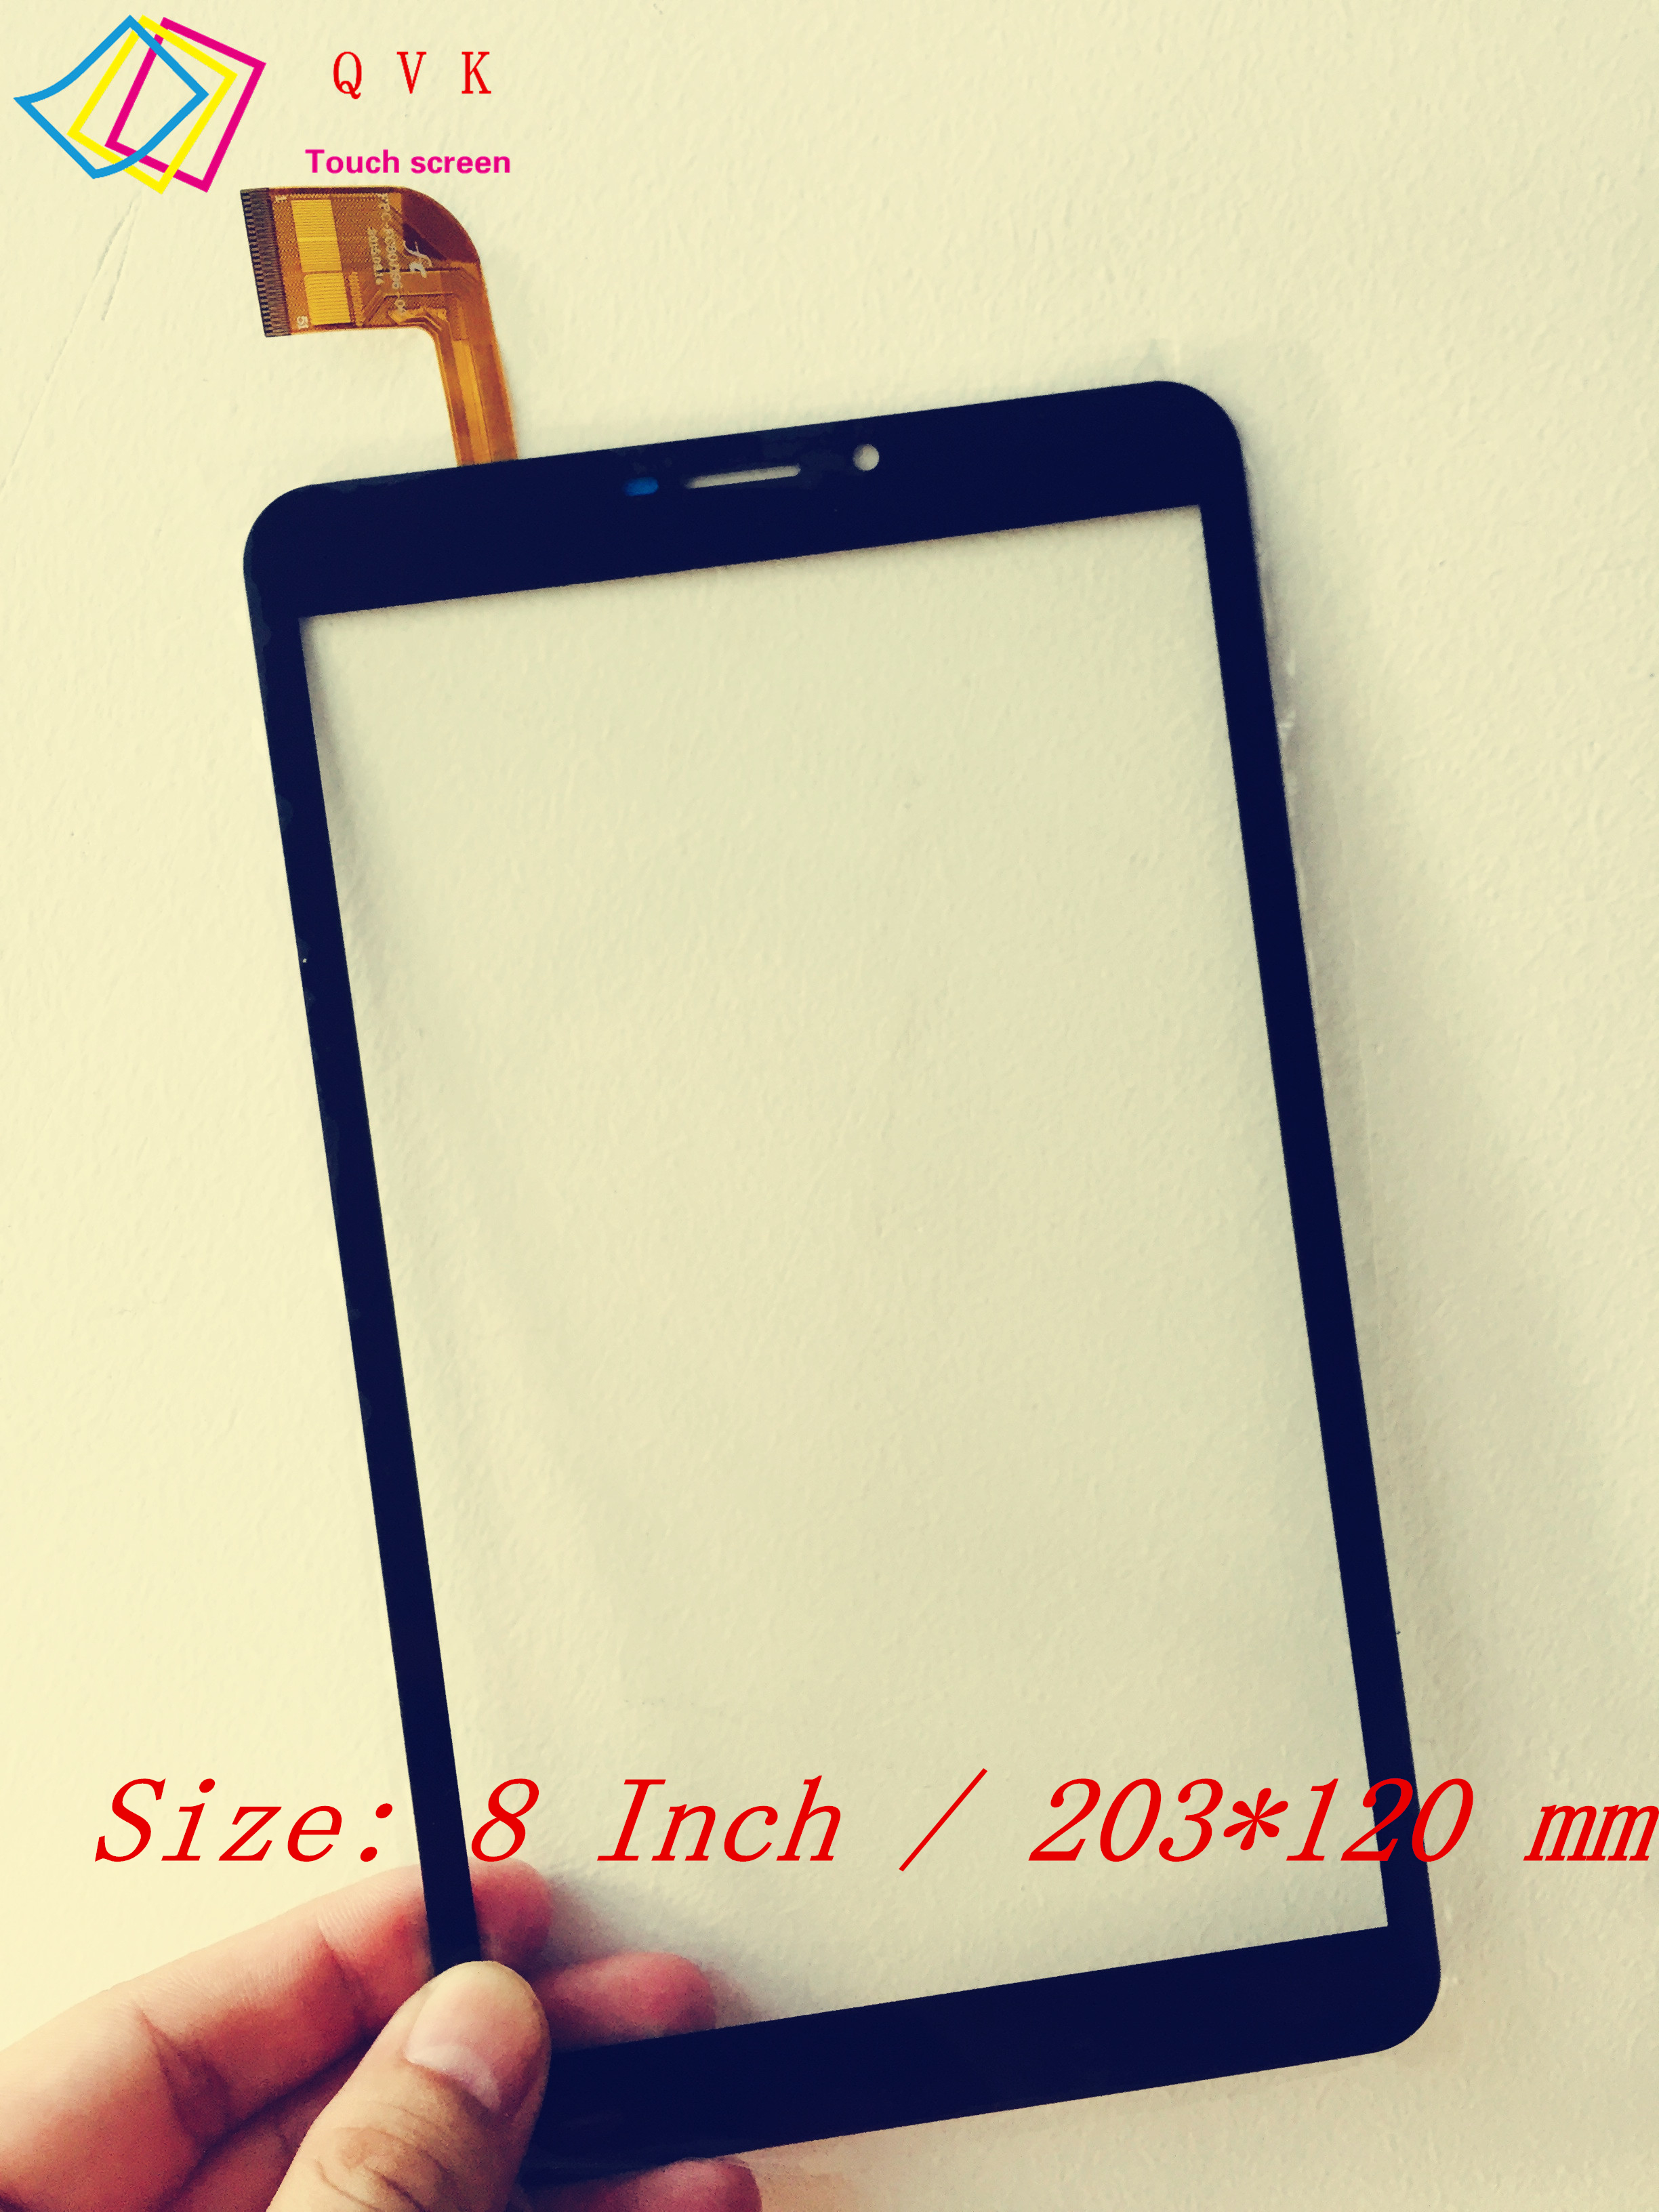 Black 8 Inch for Digma Optima 8100R 4G TS8104ML tablet pc capacitive touch screen glass digitizer panel Free shipping original new 8 inch ntp080cm112104 capacitive touch screen digitizer panel for tablet pc touch screen panels free shipping